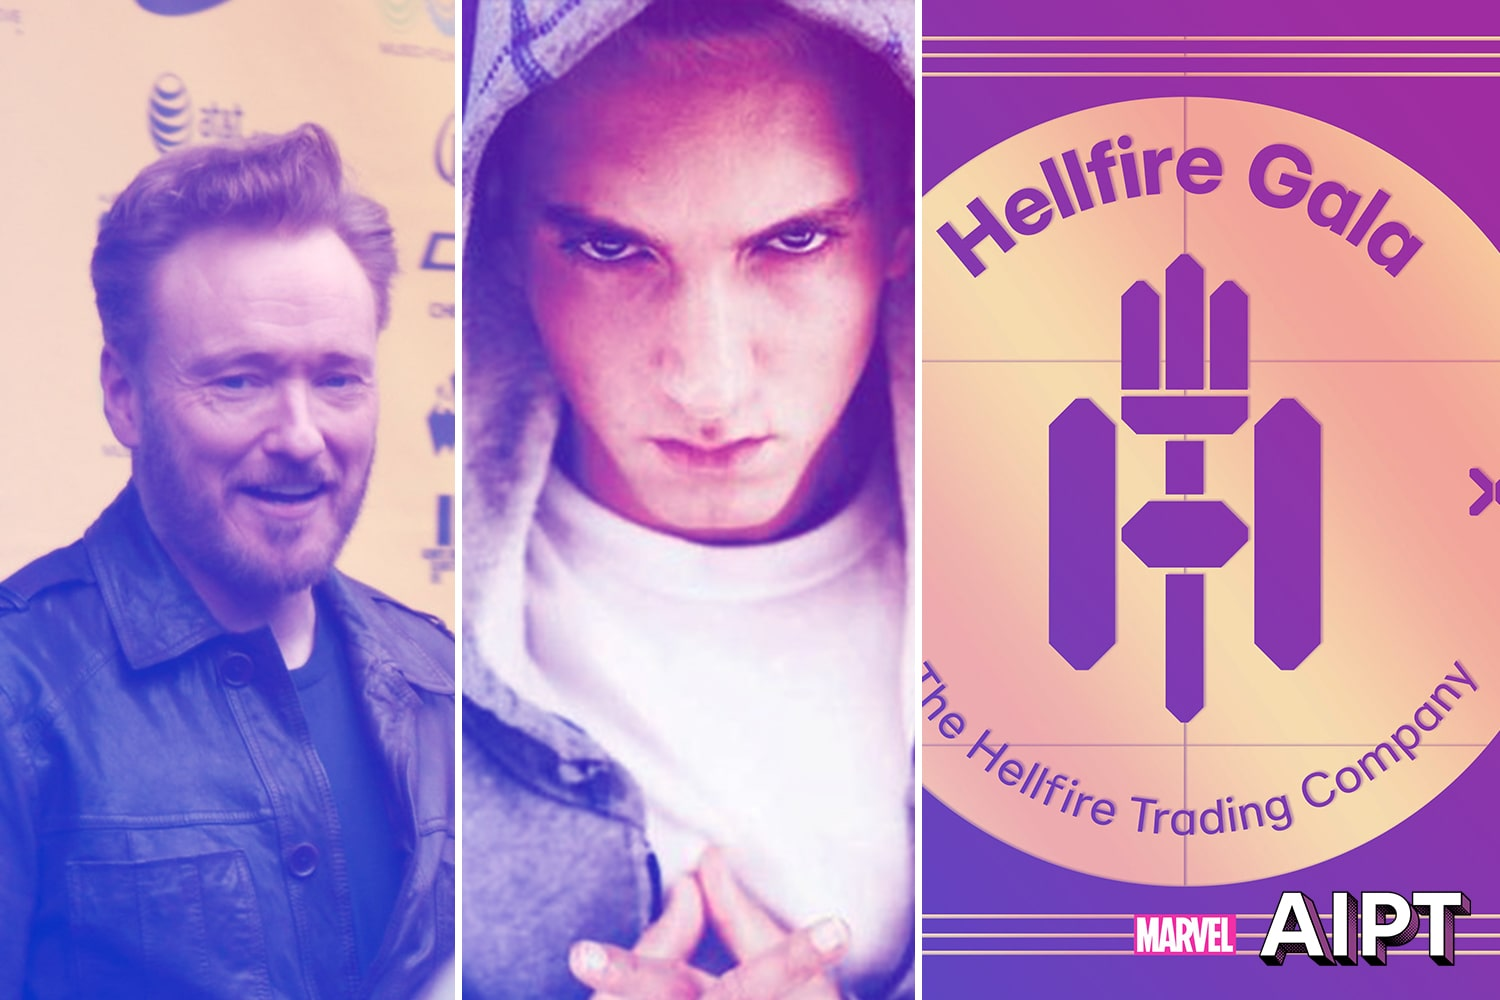 Marvel has invited real-world celebrities to the Hellfire Gala